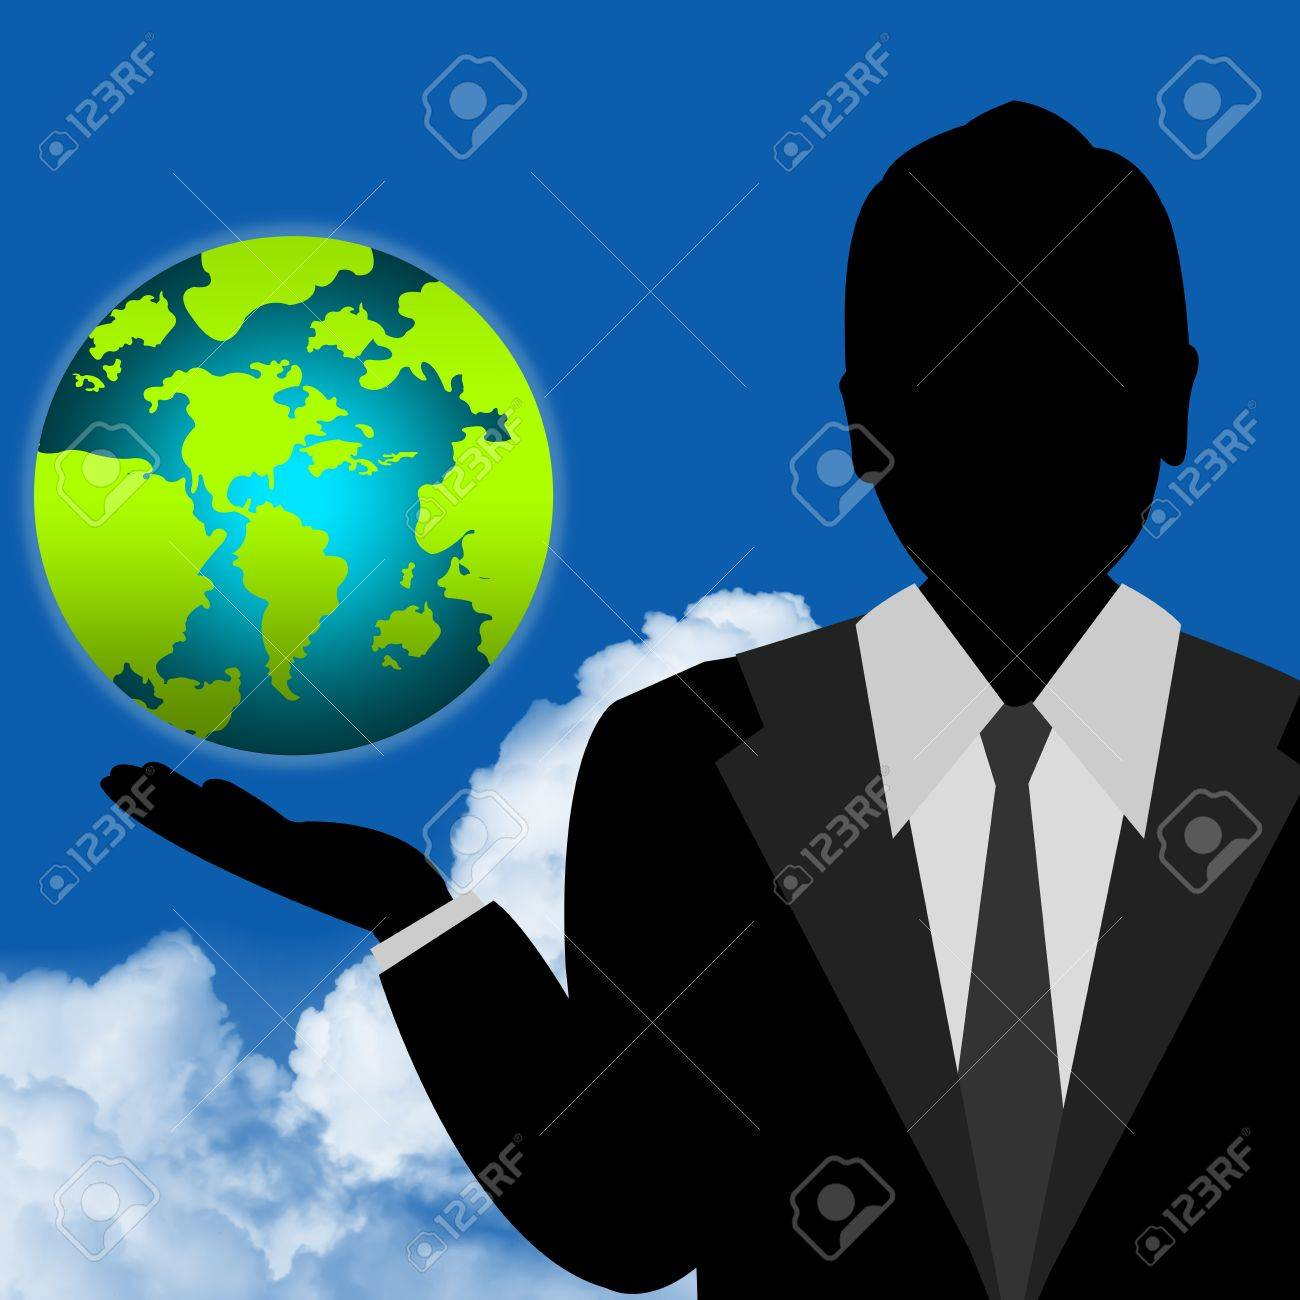 The Earth on Hand For Stop Global Warming or Save The Earth Concept With Blue Sky Background Stock Photo - 14686985